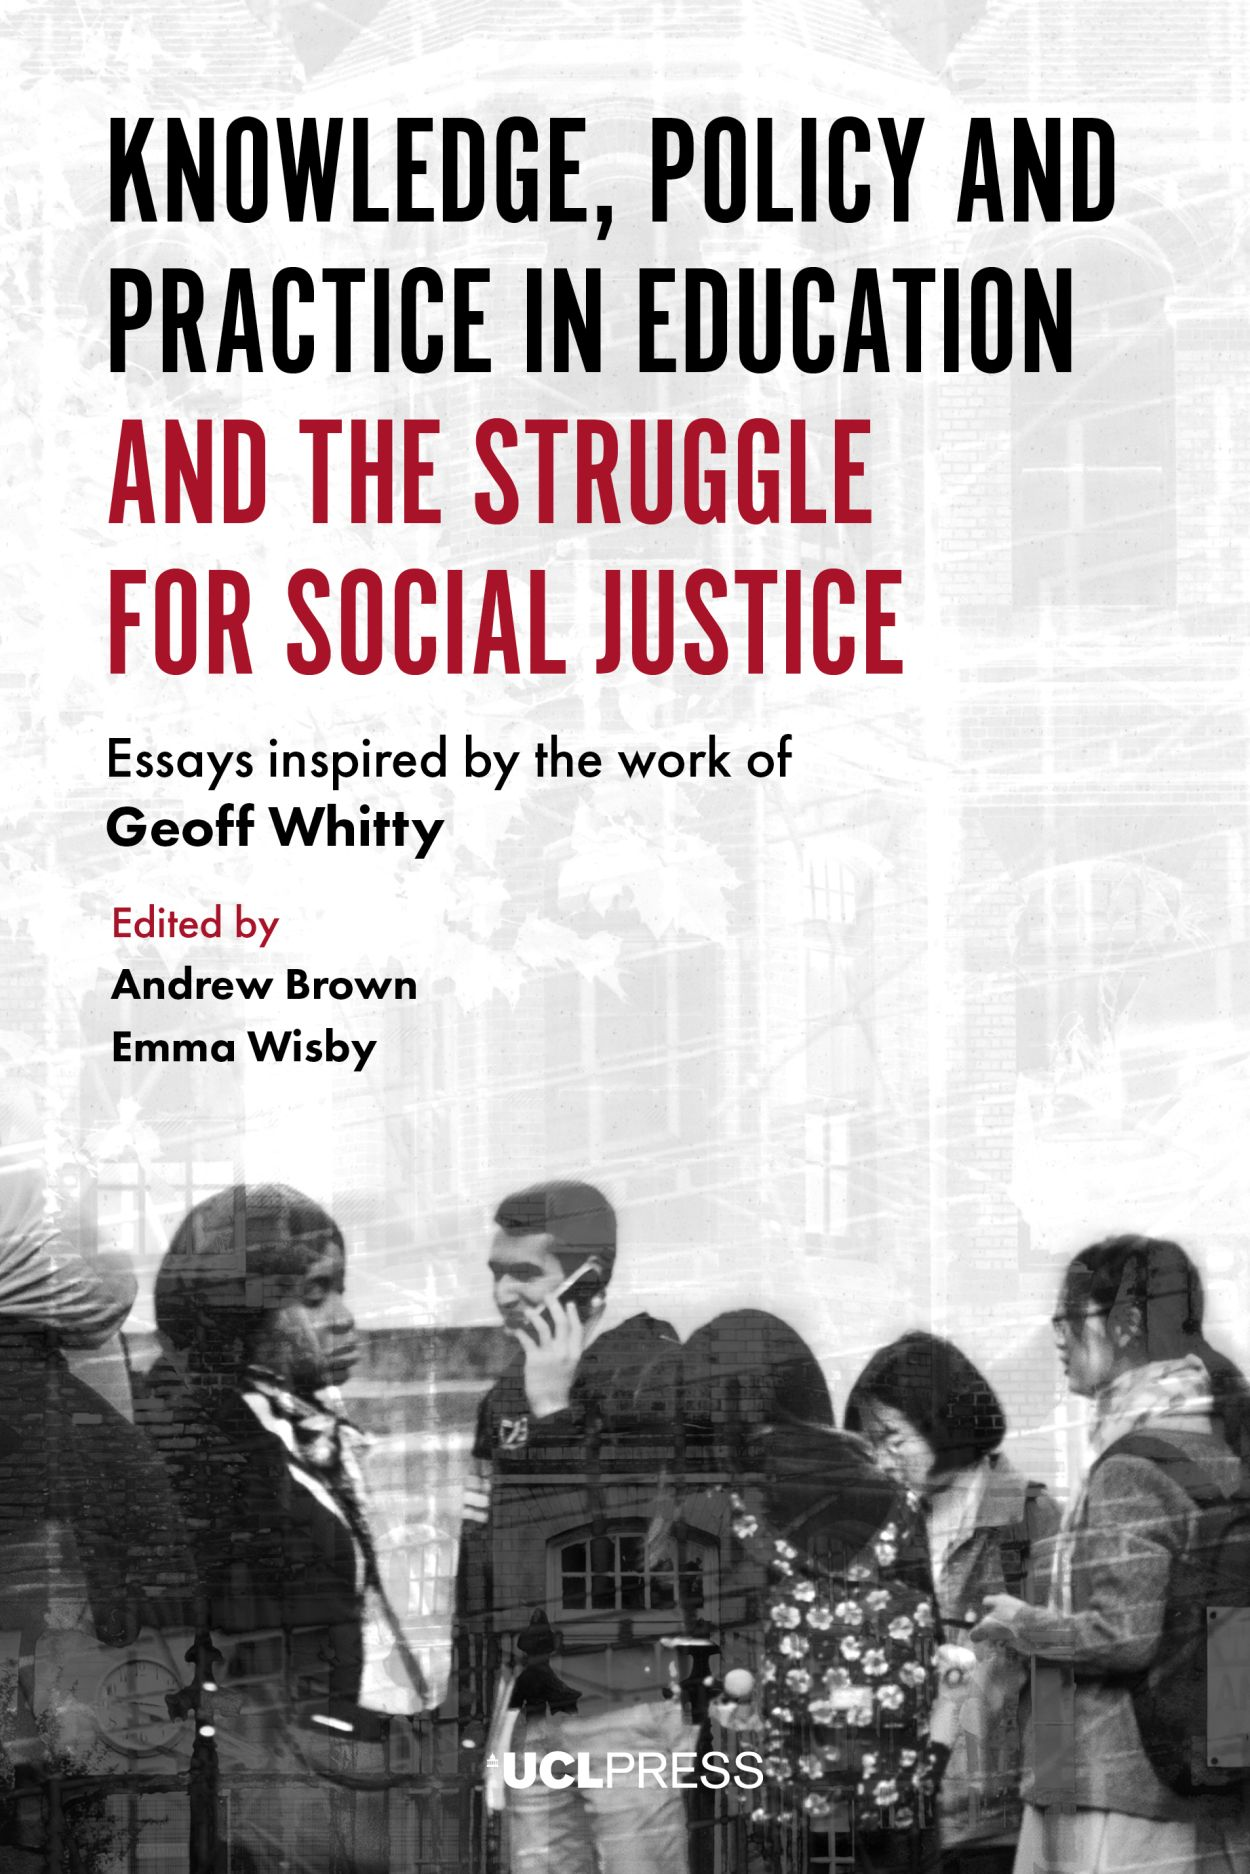 Knowledge, Policy and Practice in Education and the Struggle for Social Justice